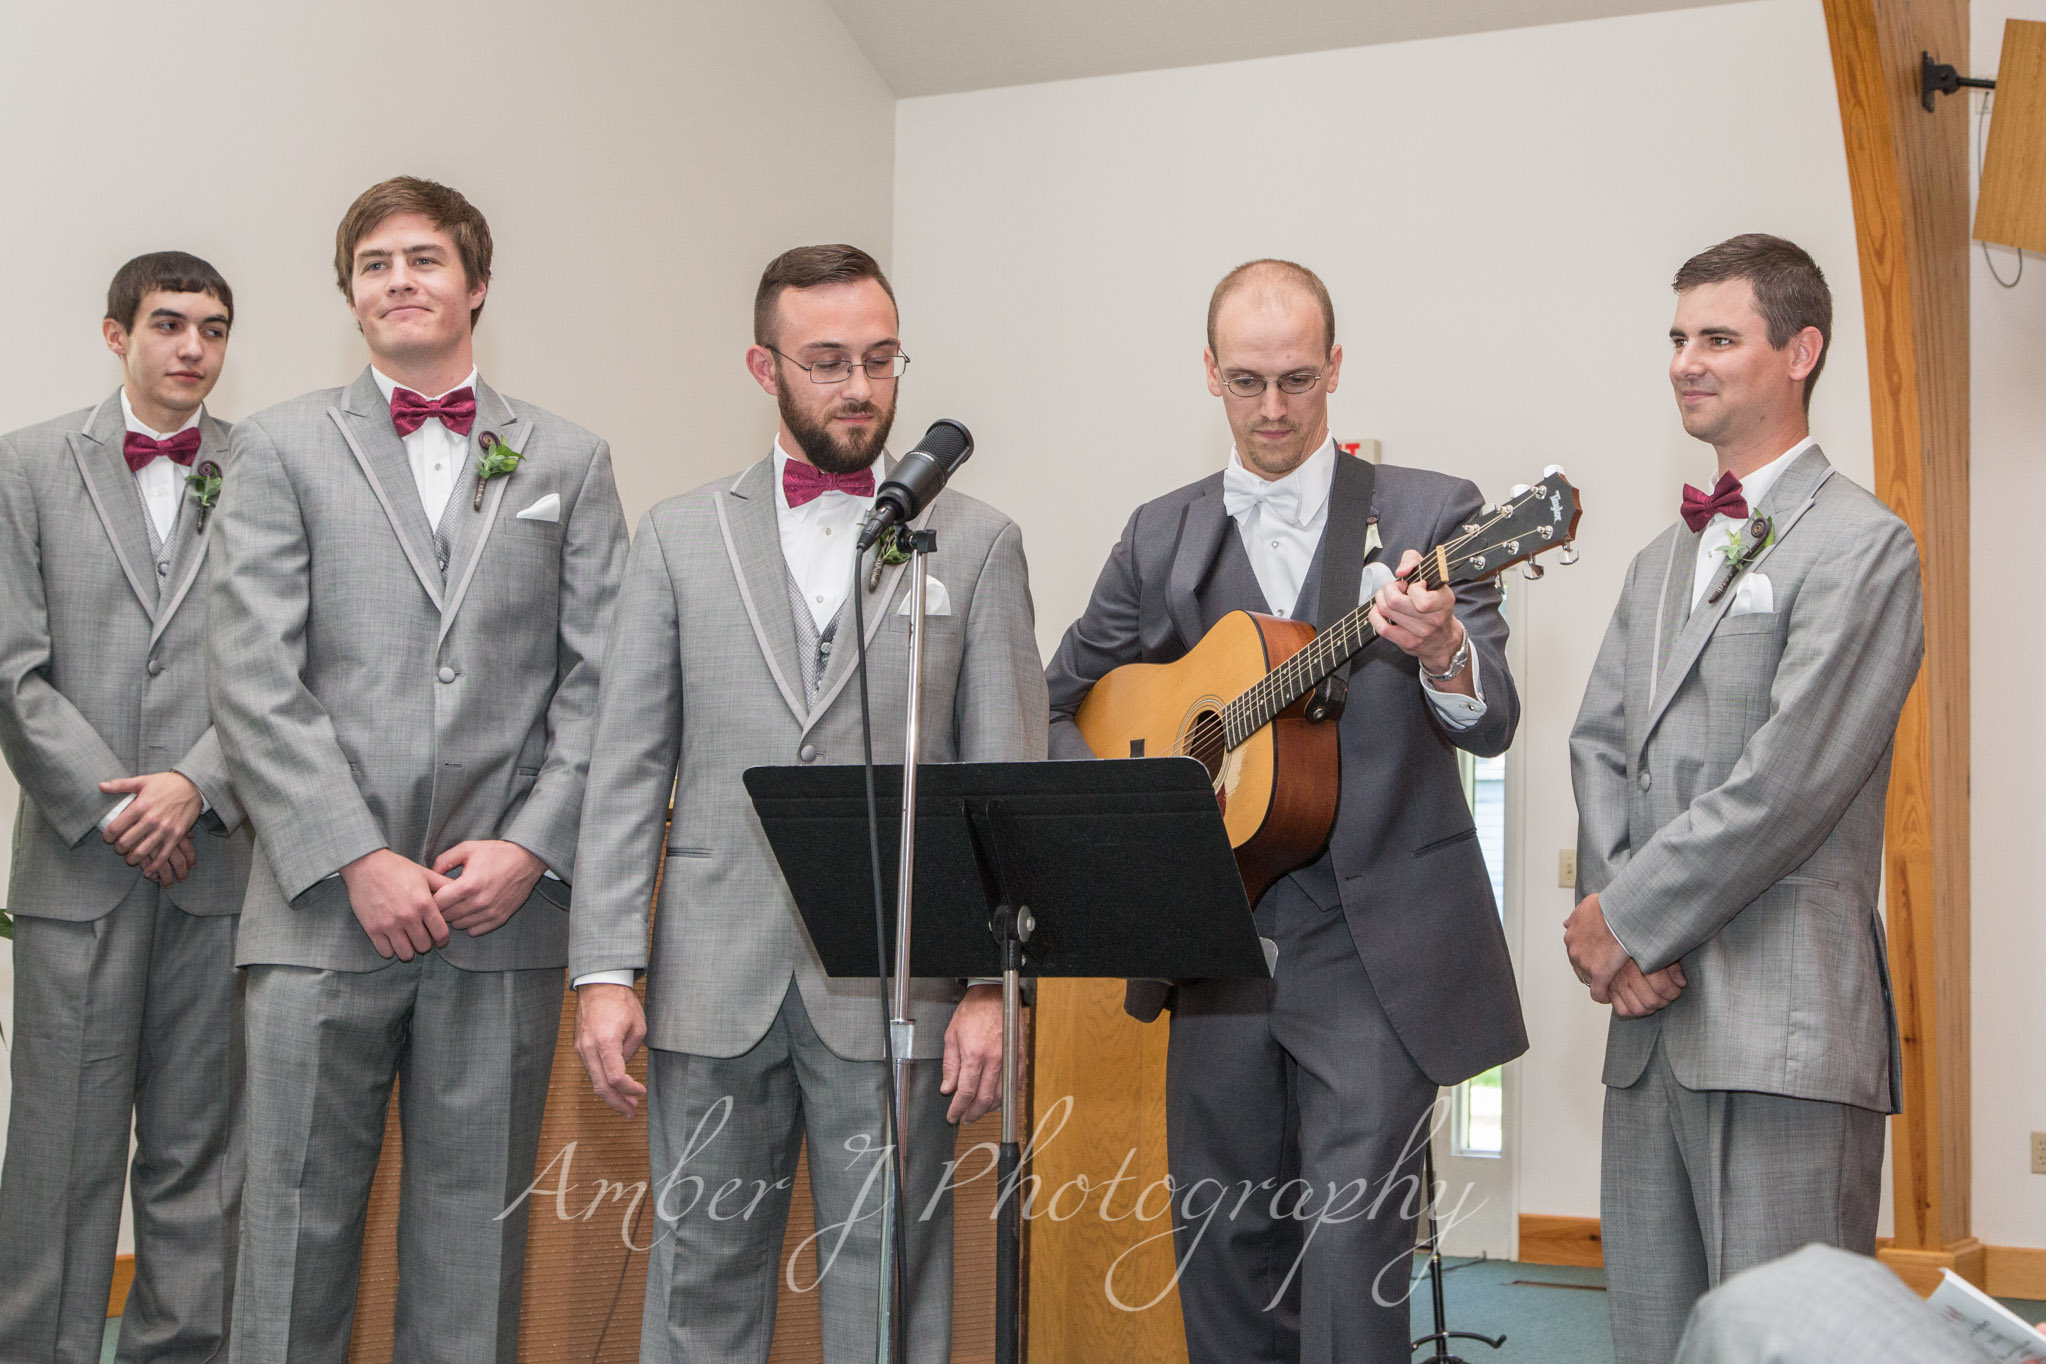 Sommer_Wedding_AmberJphotography_10.jpg